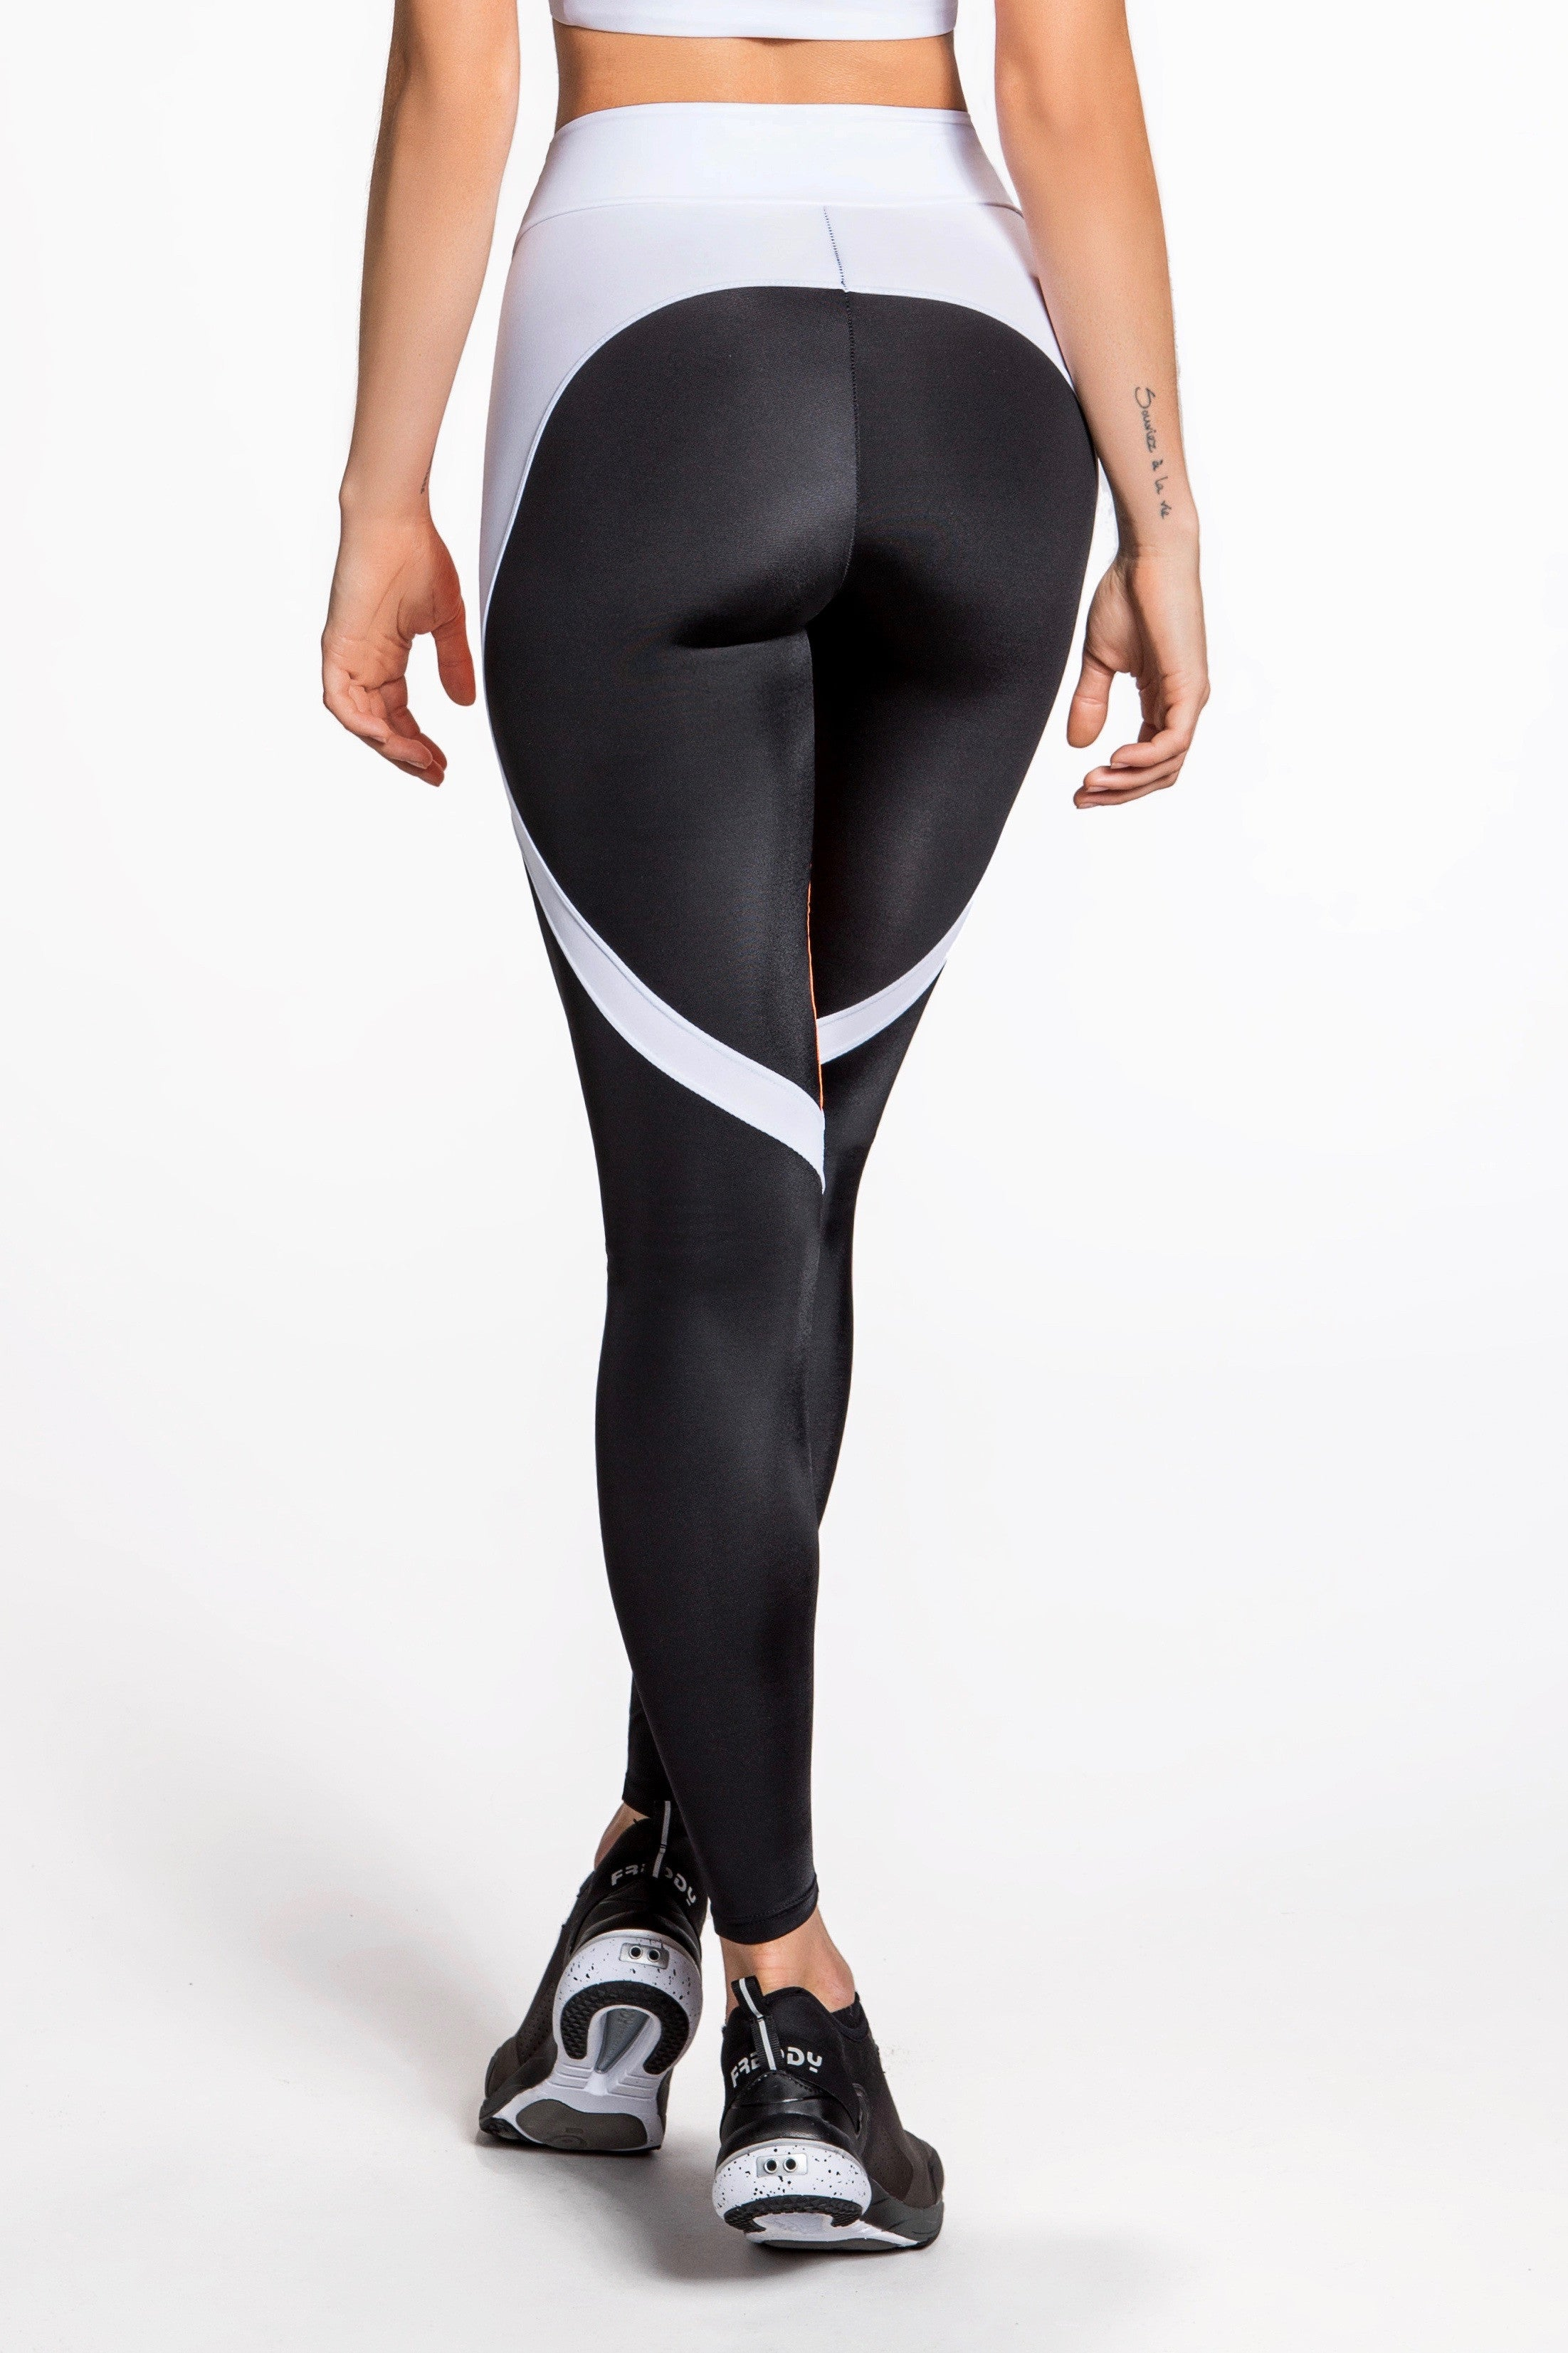 Flexy Feline Leggings - Black/Orange/White